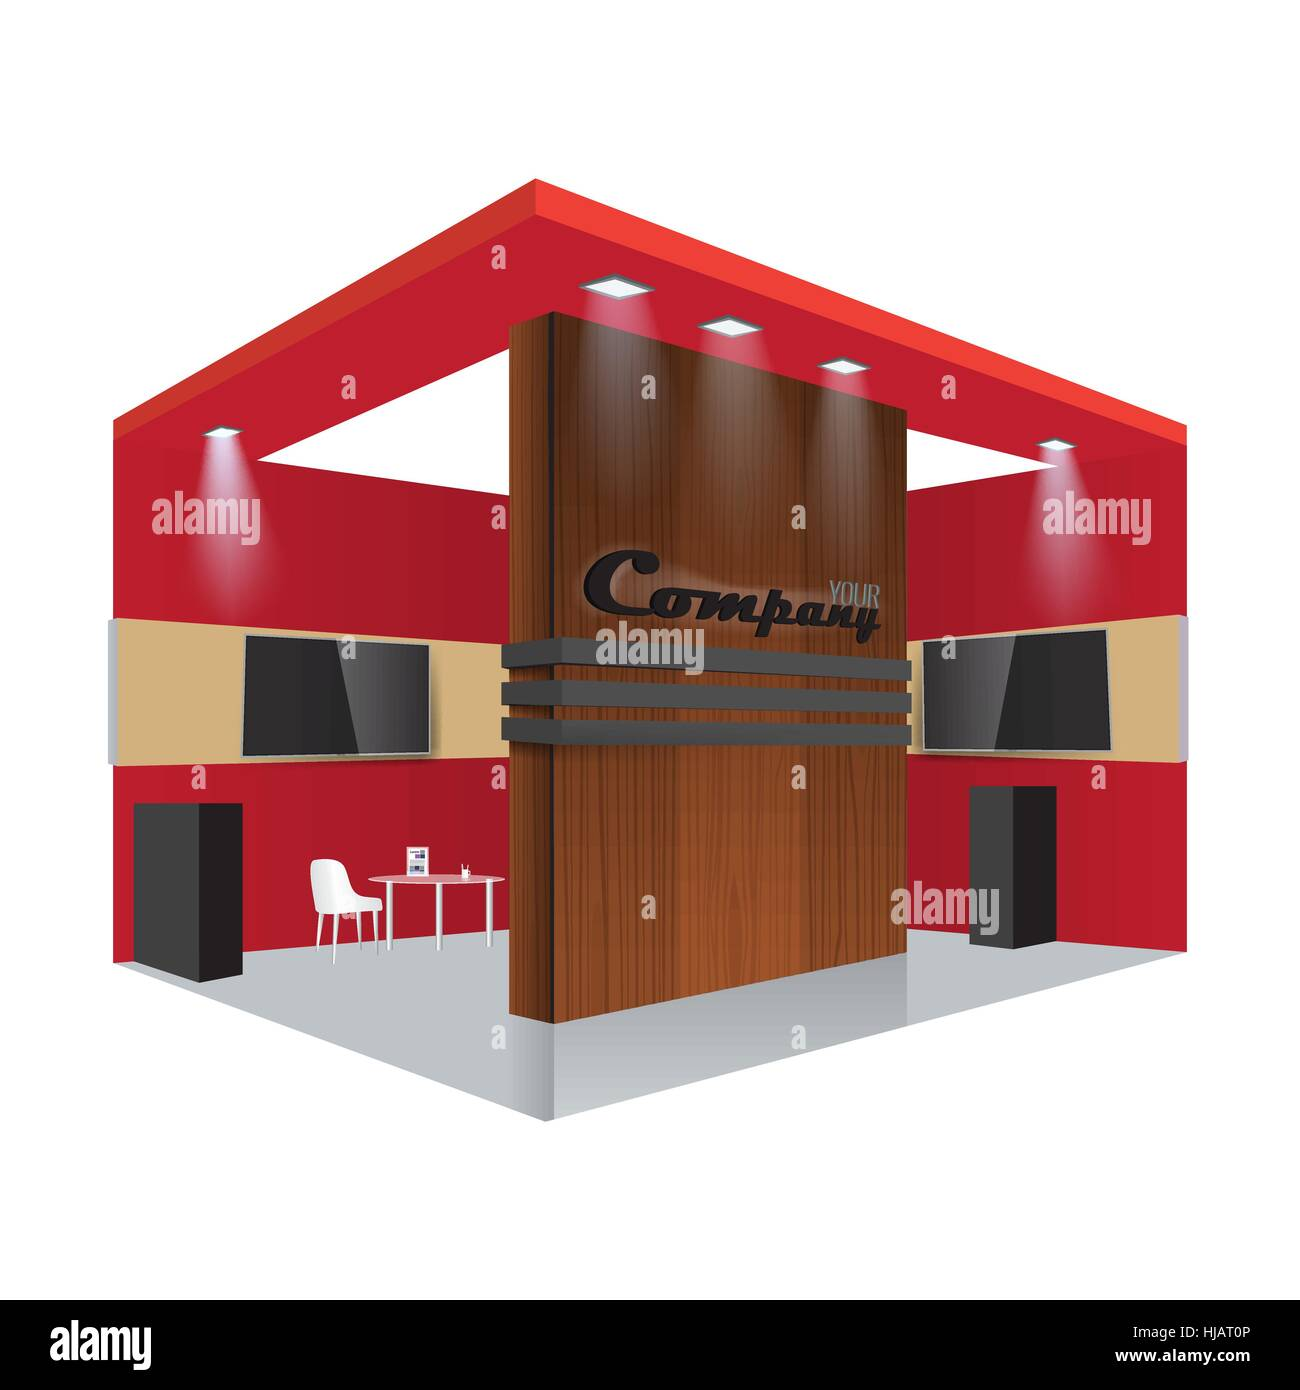 Exhibition Stand Roll Up : Illustrated unique creative wooden exhibition stand display design